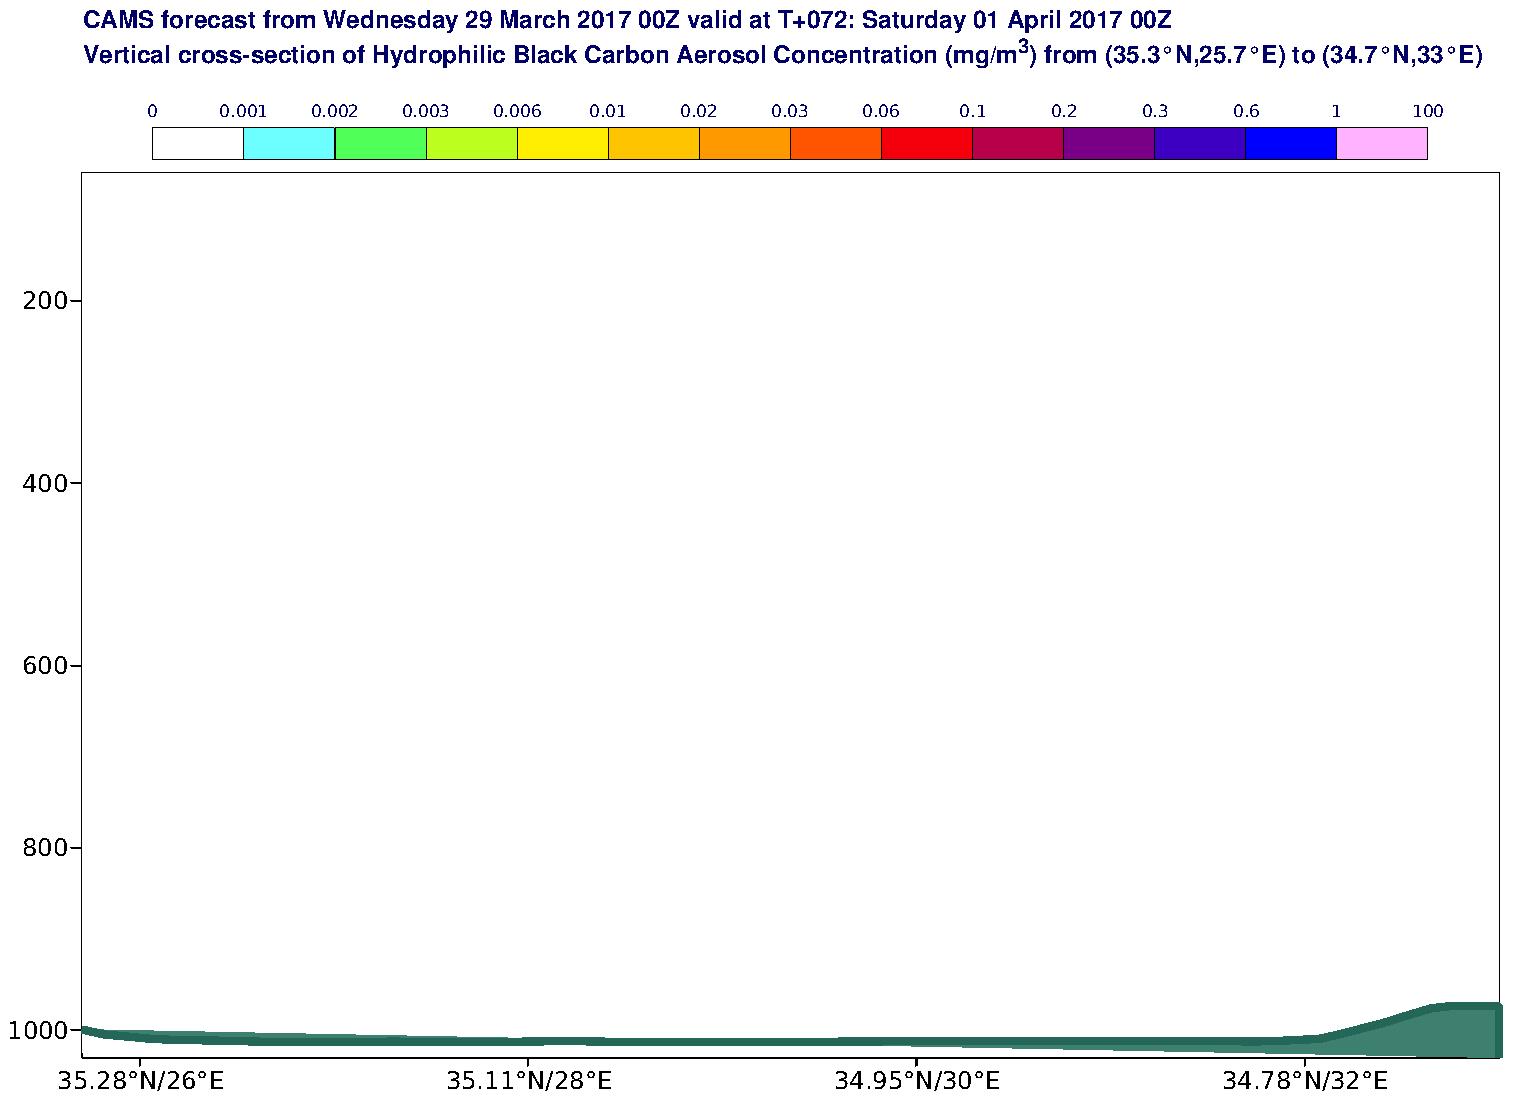 Vertical cross-section of Hydrophilic Black Carbon Aerosol Concentration (mg/m3) valid at T72 - 2017-04-01 00:00